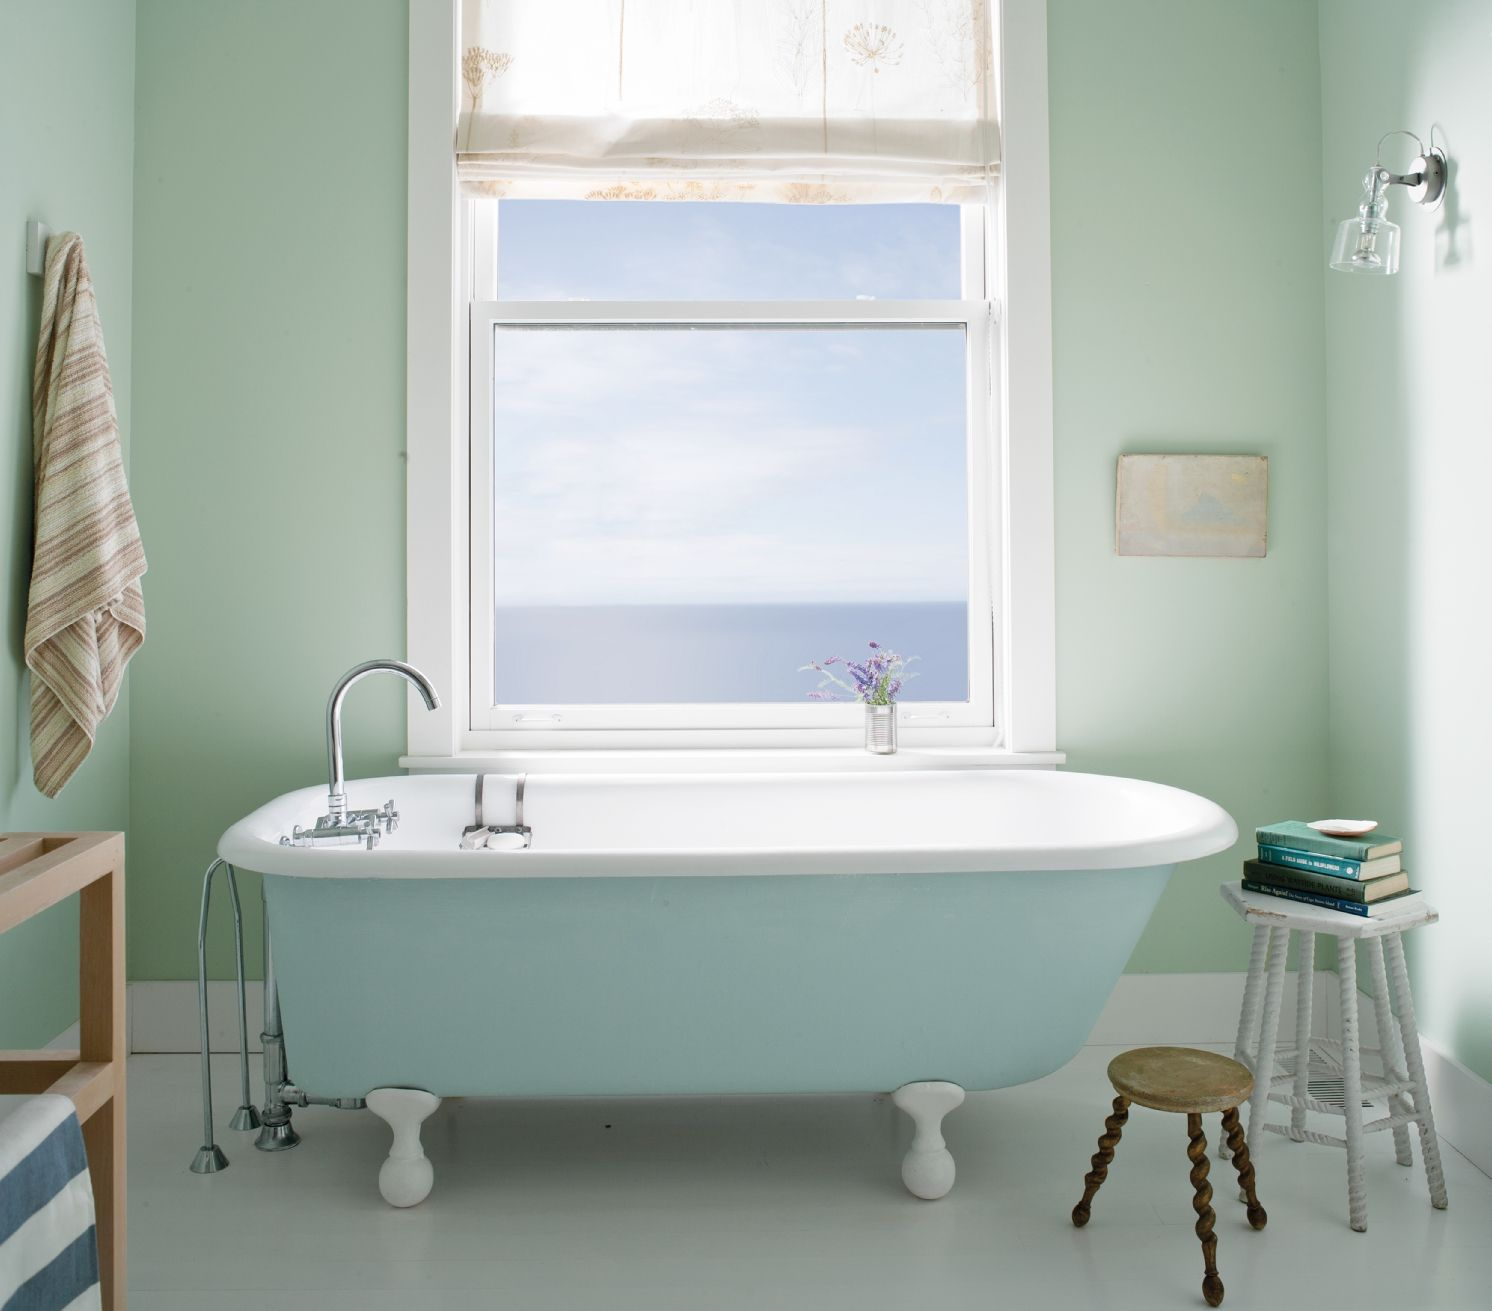 Benjamin moore palladian blue bathroom - Benjaminmoore Palladian Blue Hc 144 With Aura Bath Spa Matte Finish Walls